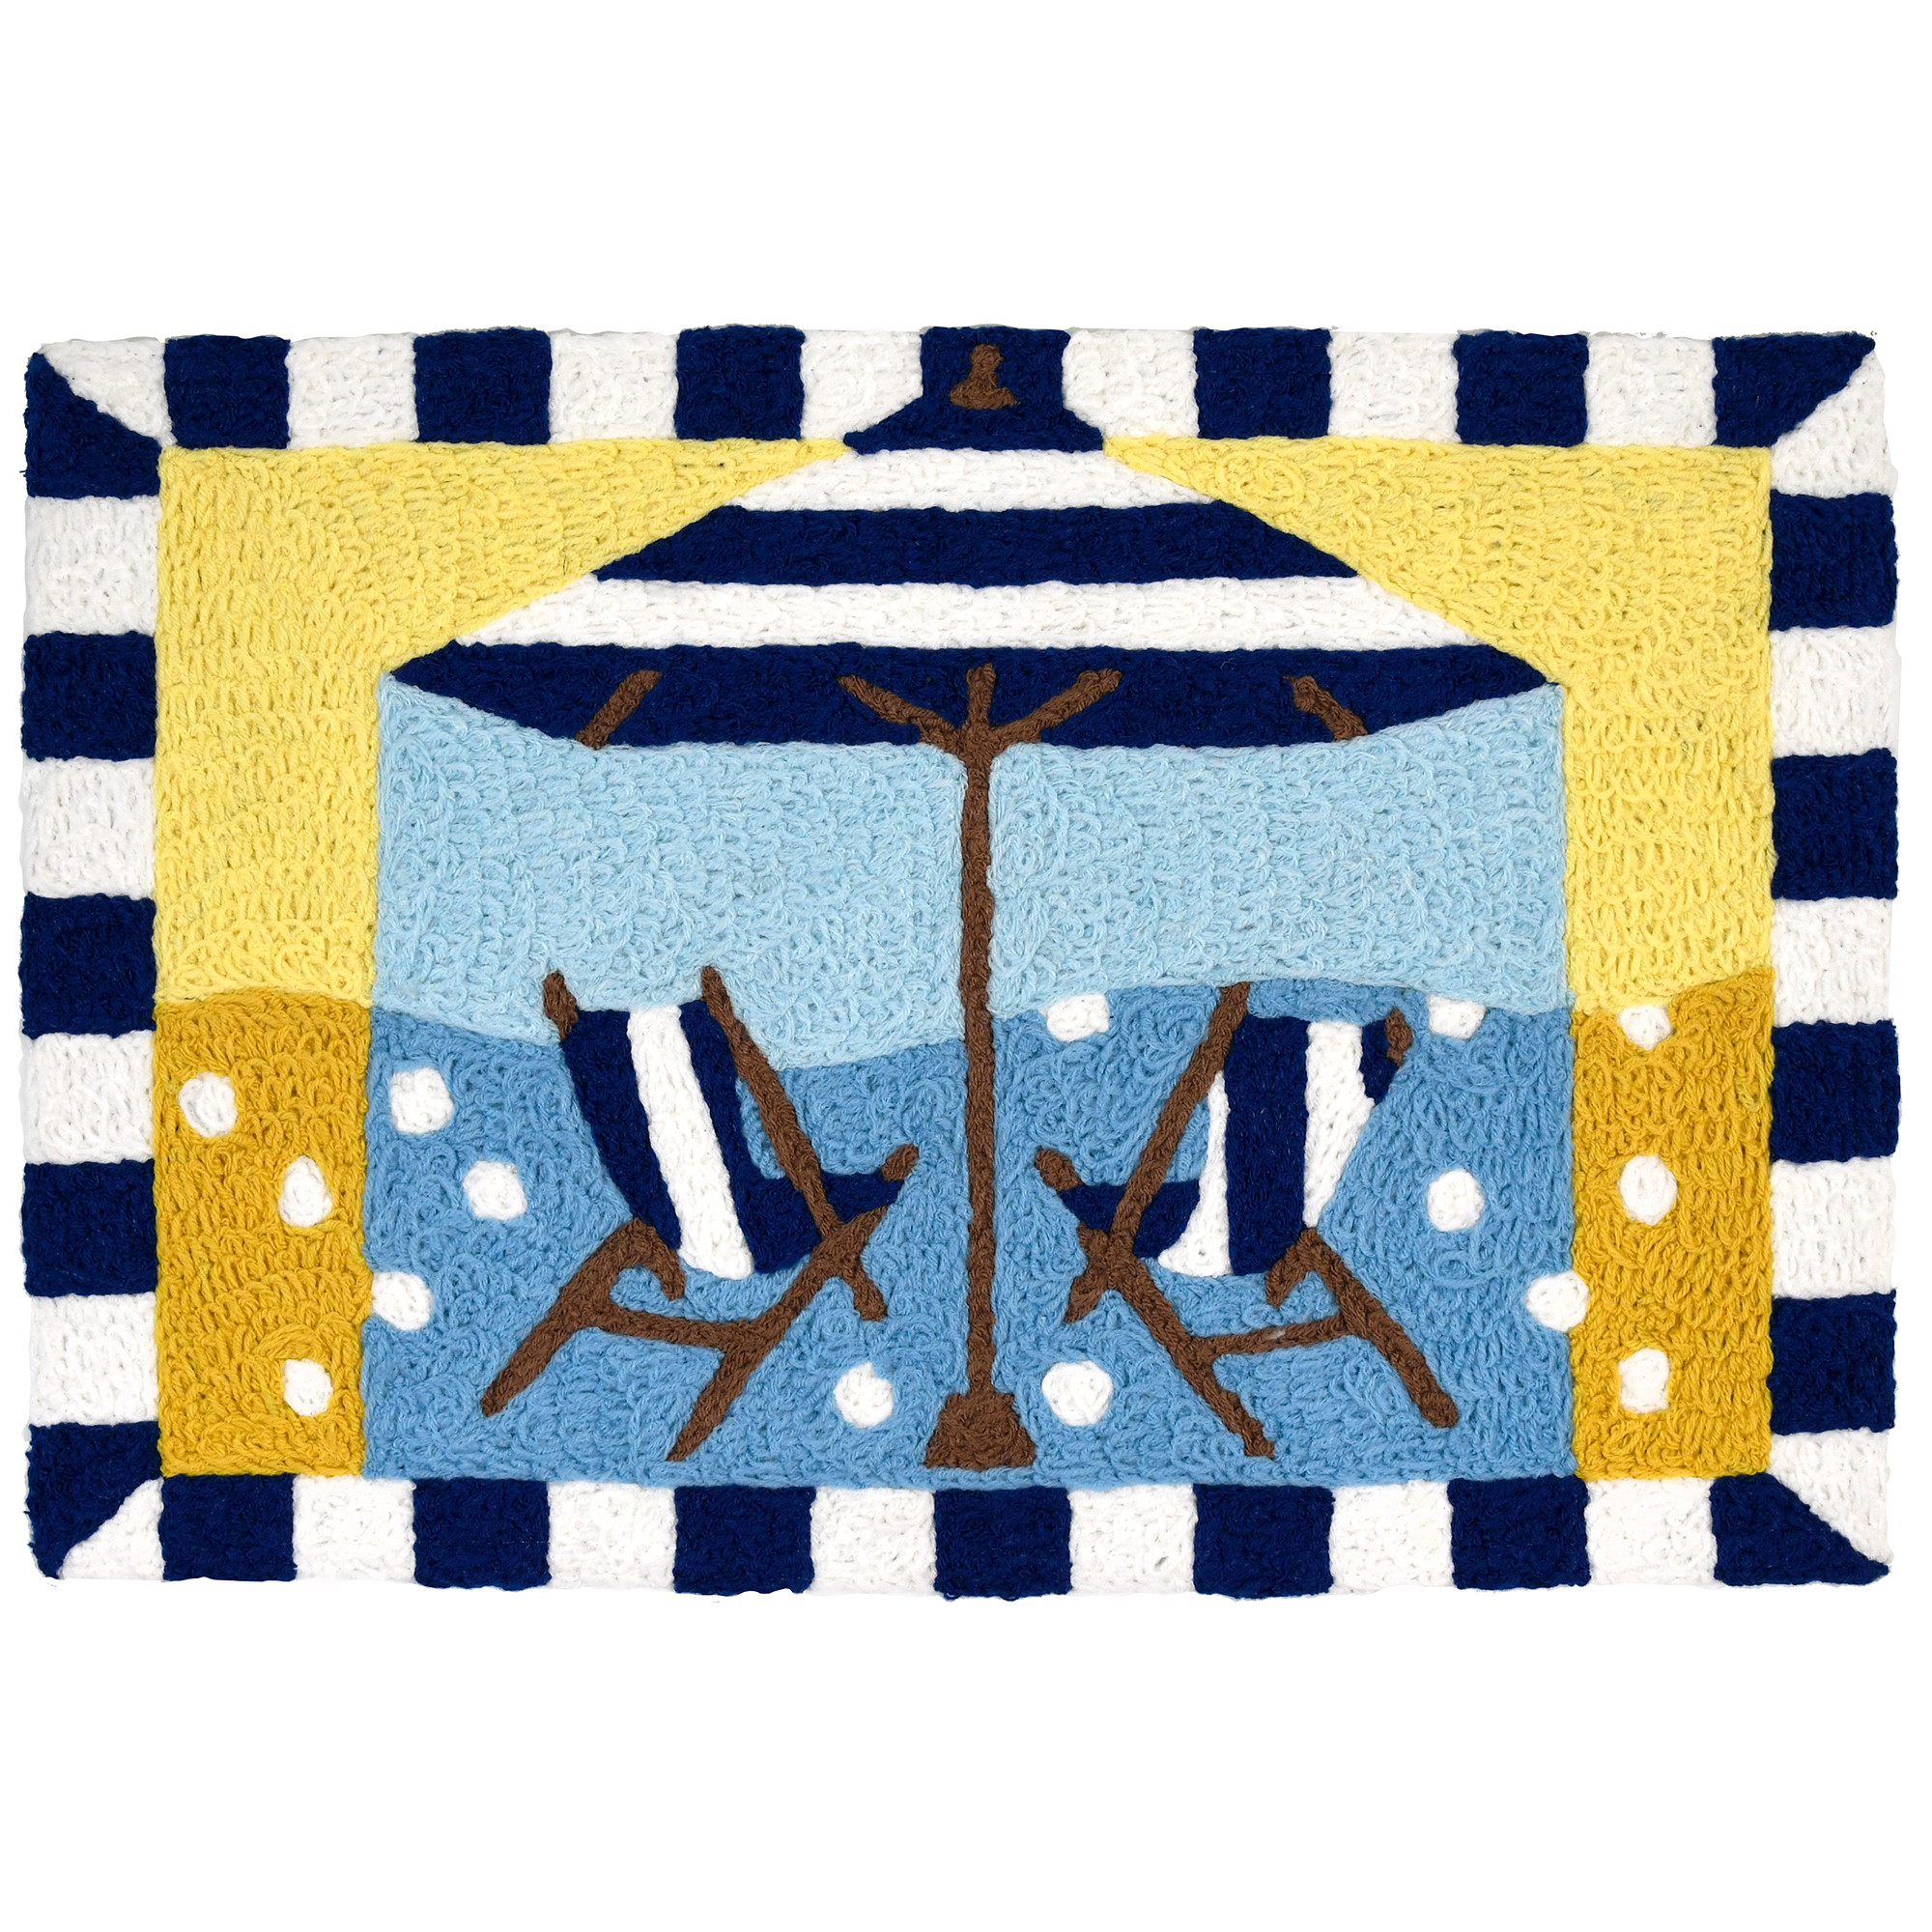 Artist Sally Ball Sharp has captured the essence of beach living on this Jellybean® accent rug. Primary colors of yellow, blue, and white show off the geometric balance of striped chairs and umbrella against bubbling circles. This machine washable throw rug is made of polyester and suitable for indoor and outdoor use.